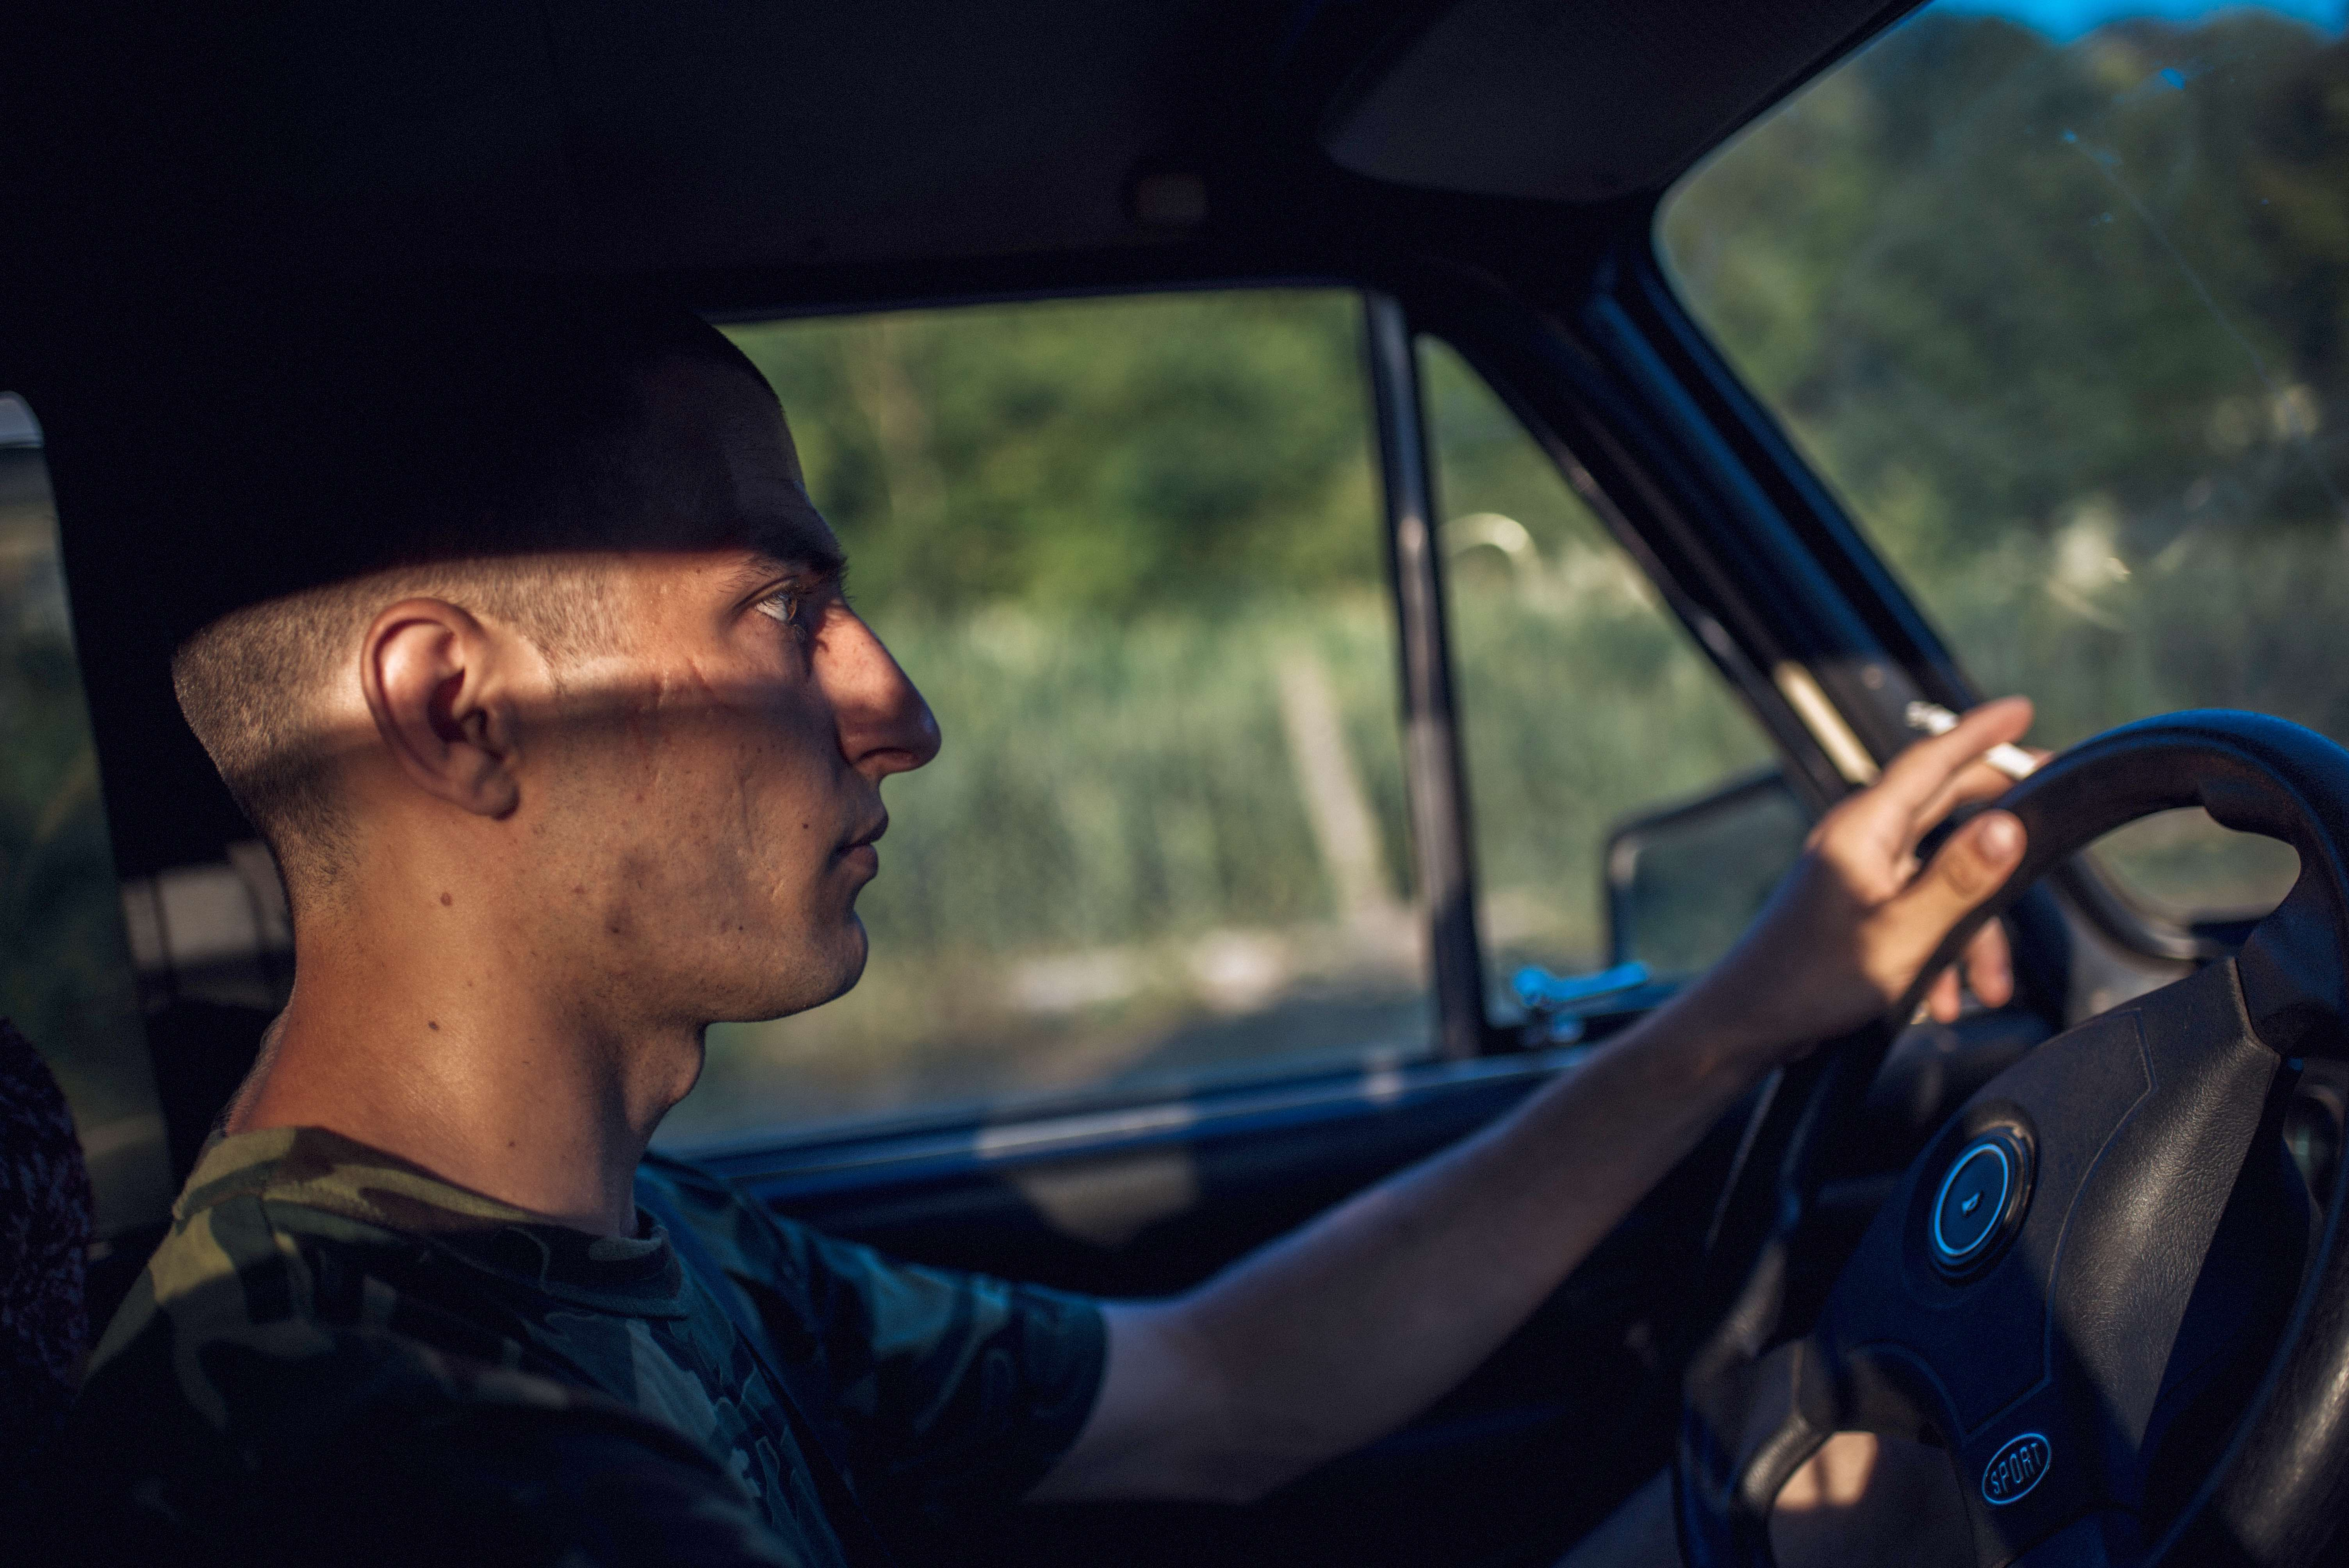 Yura makes extra money by driving people from Hristovaia to Camenca using his mother's old car, a Zhiguli.